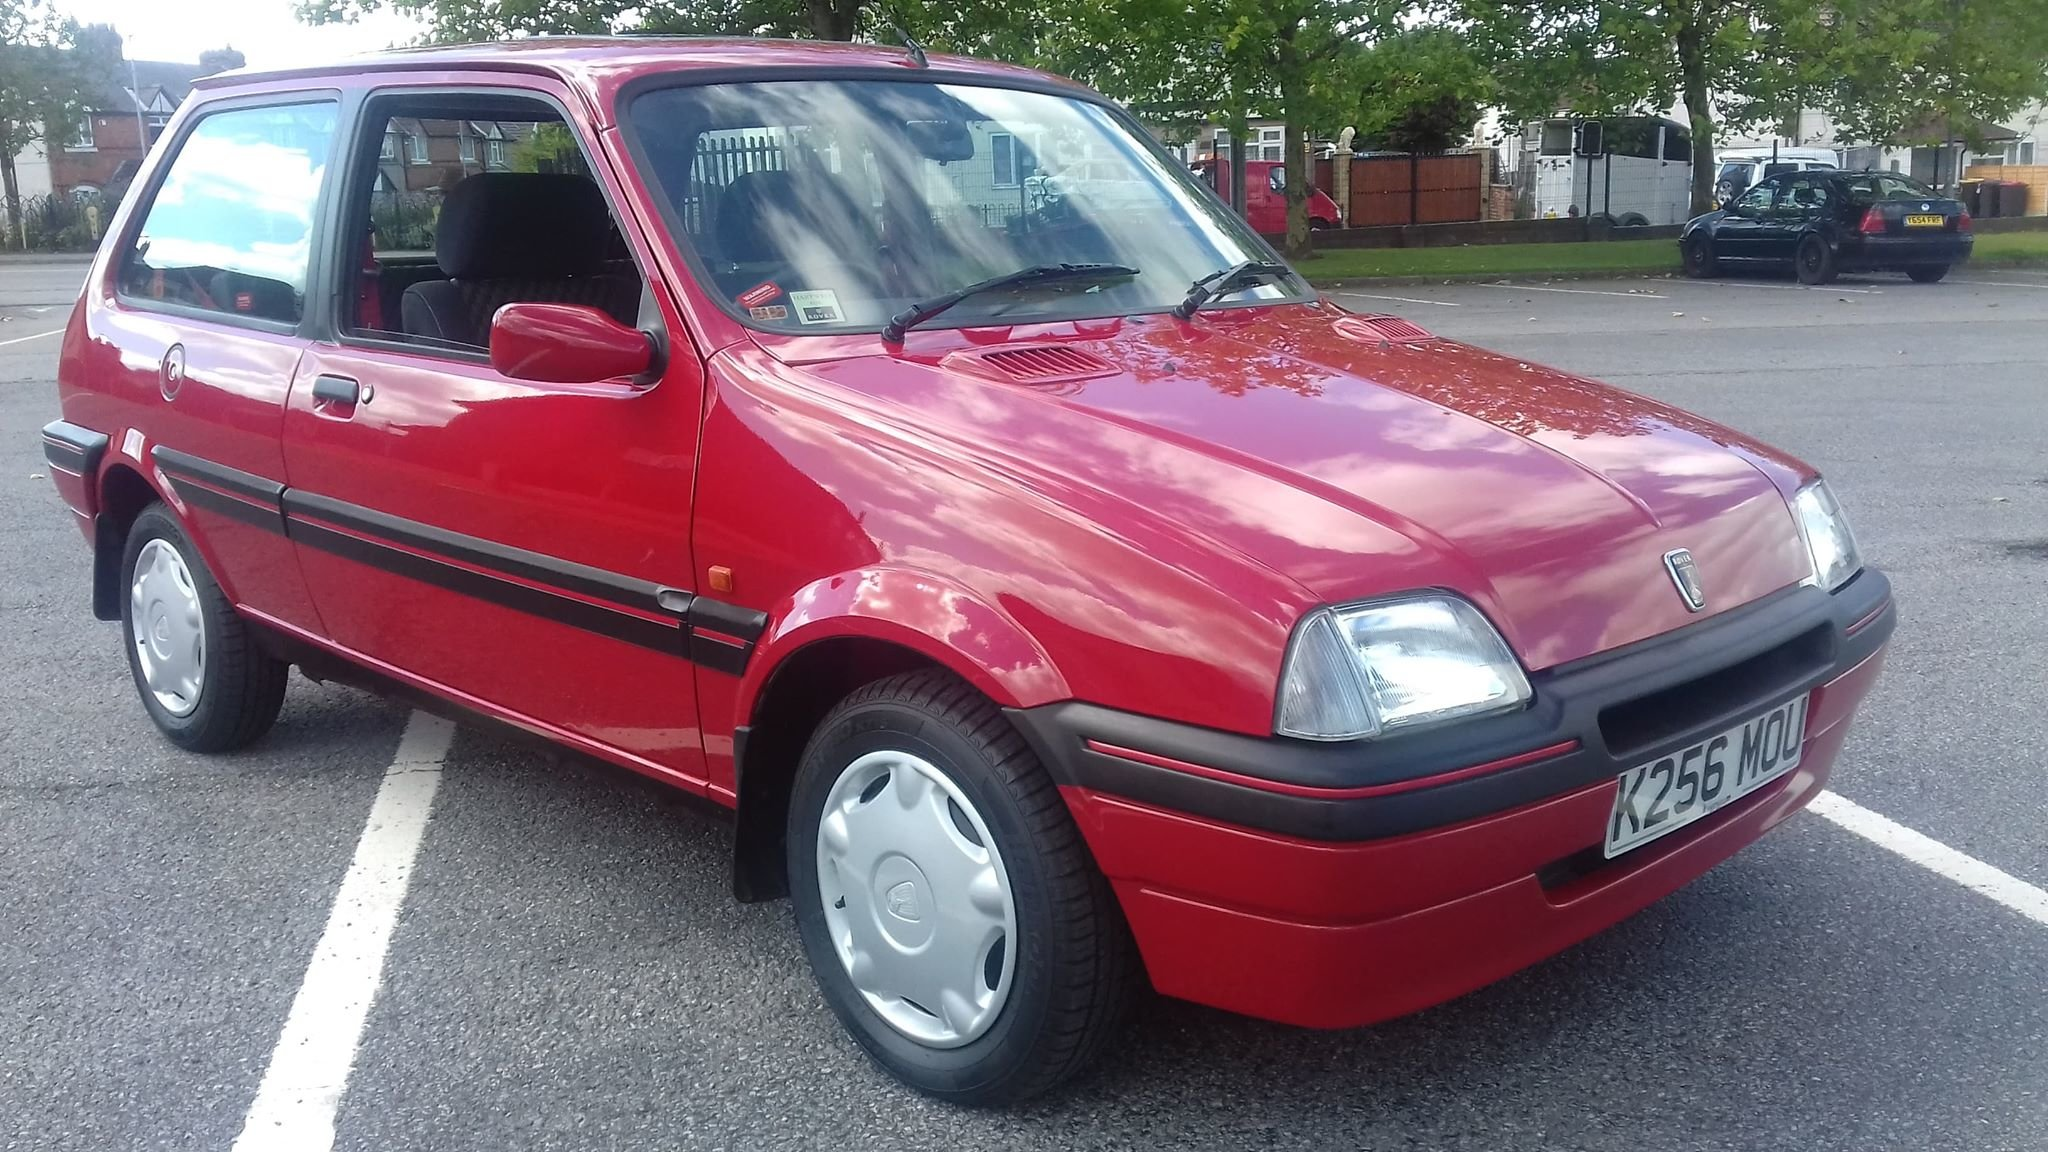 1992 Austin/rover metro 1.1 sport SOLD (picture 3 of 6)